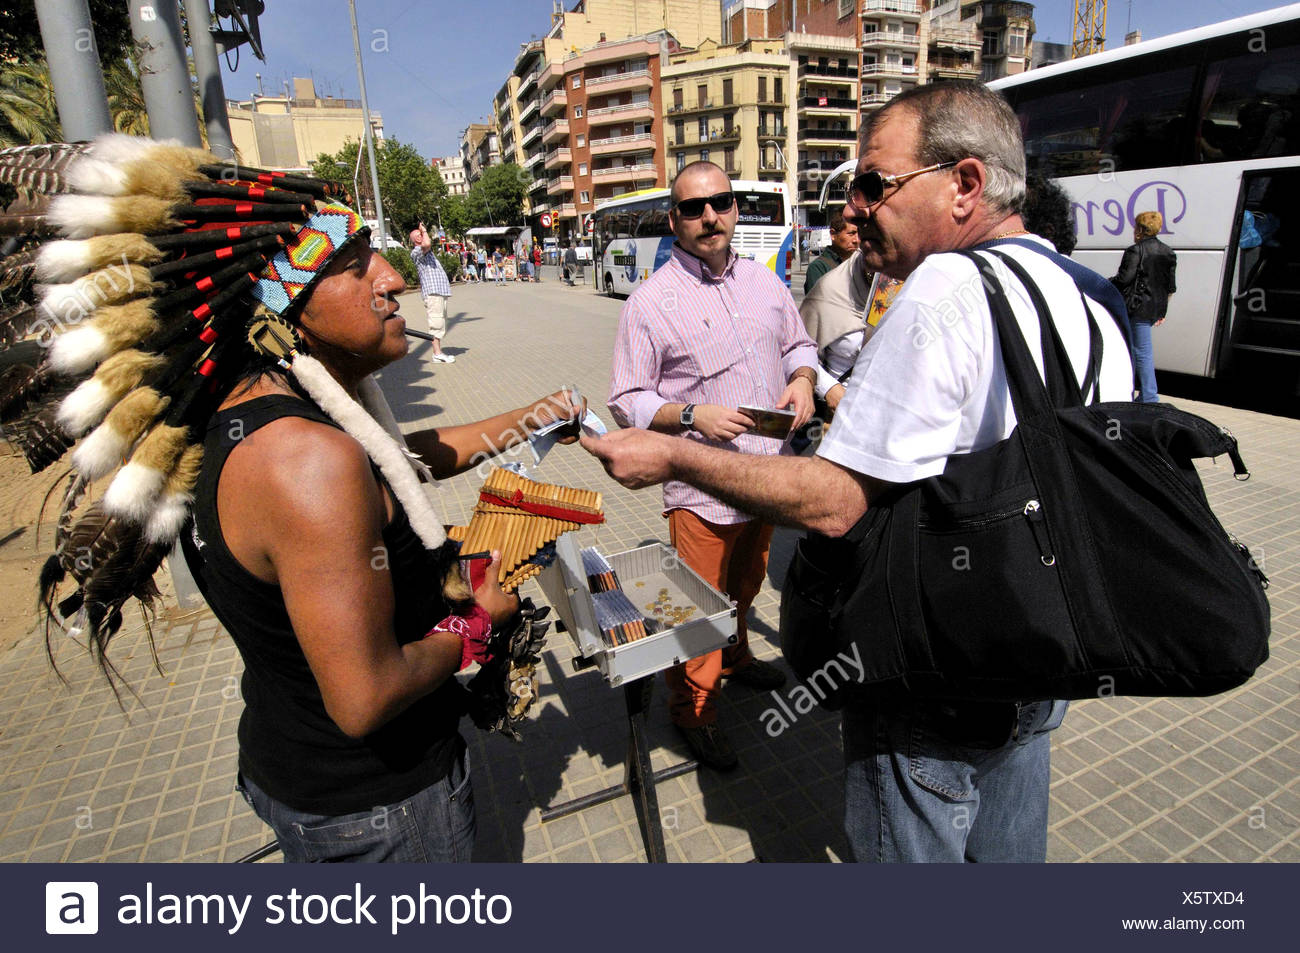 Dress Indian musician selling CD with Andean flute music  Gaudi